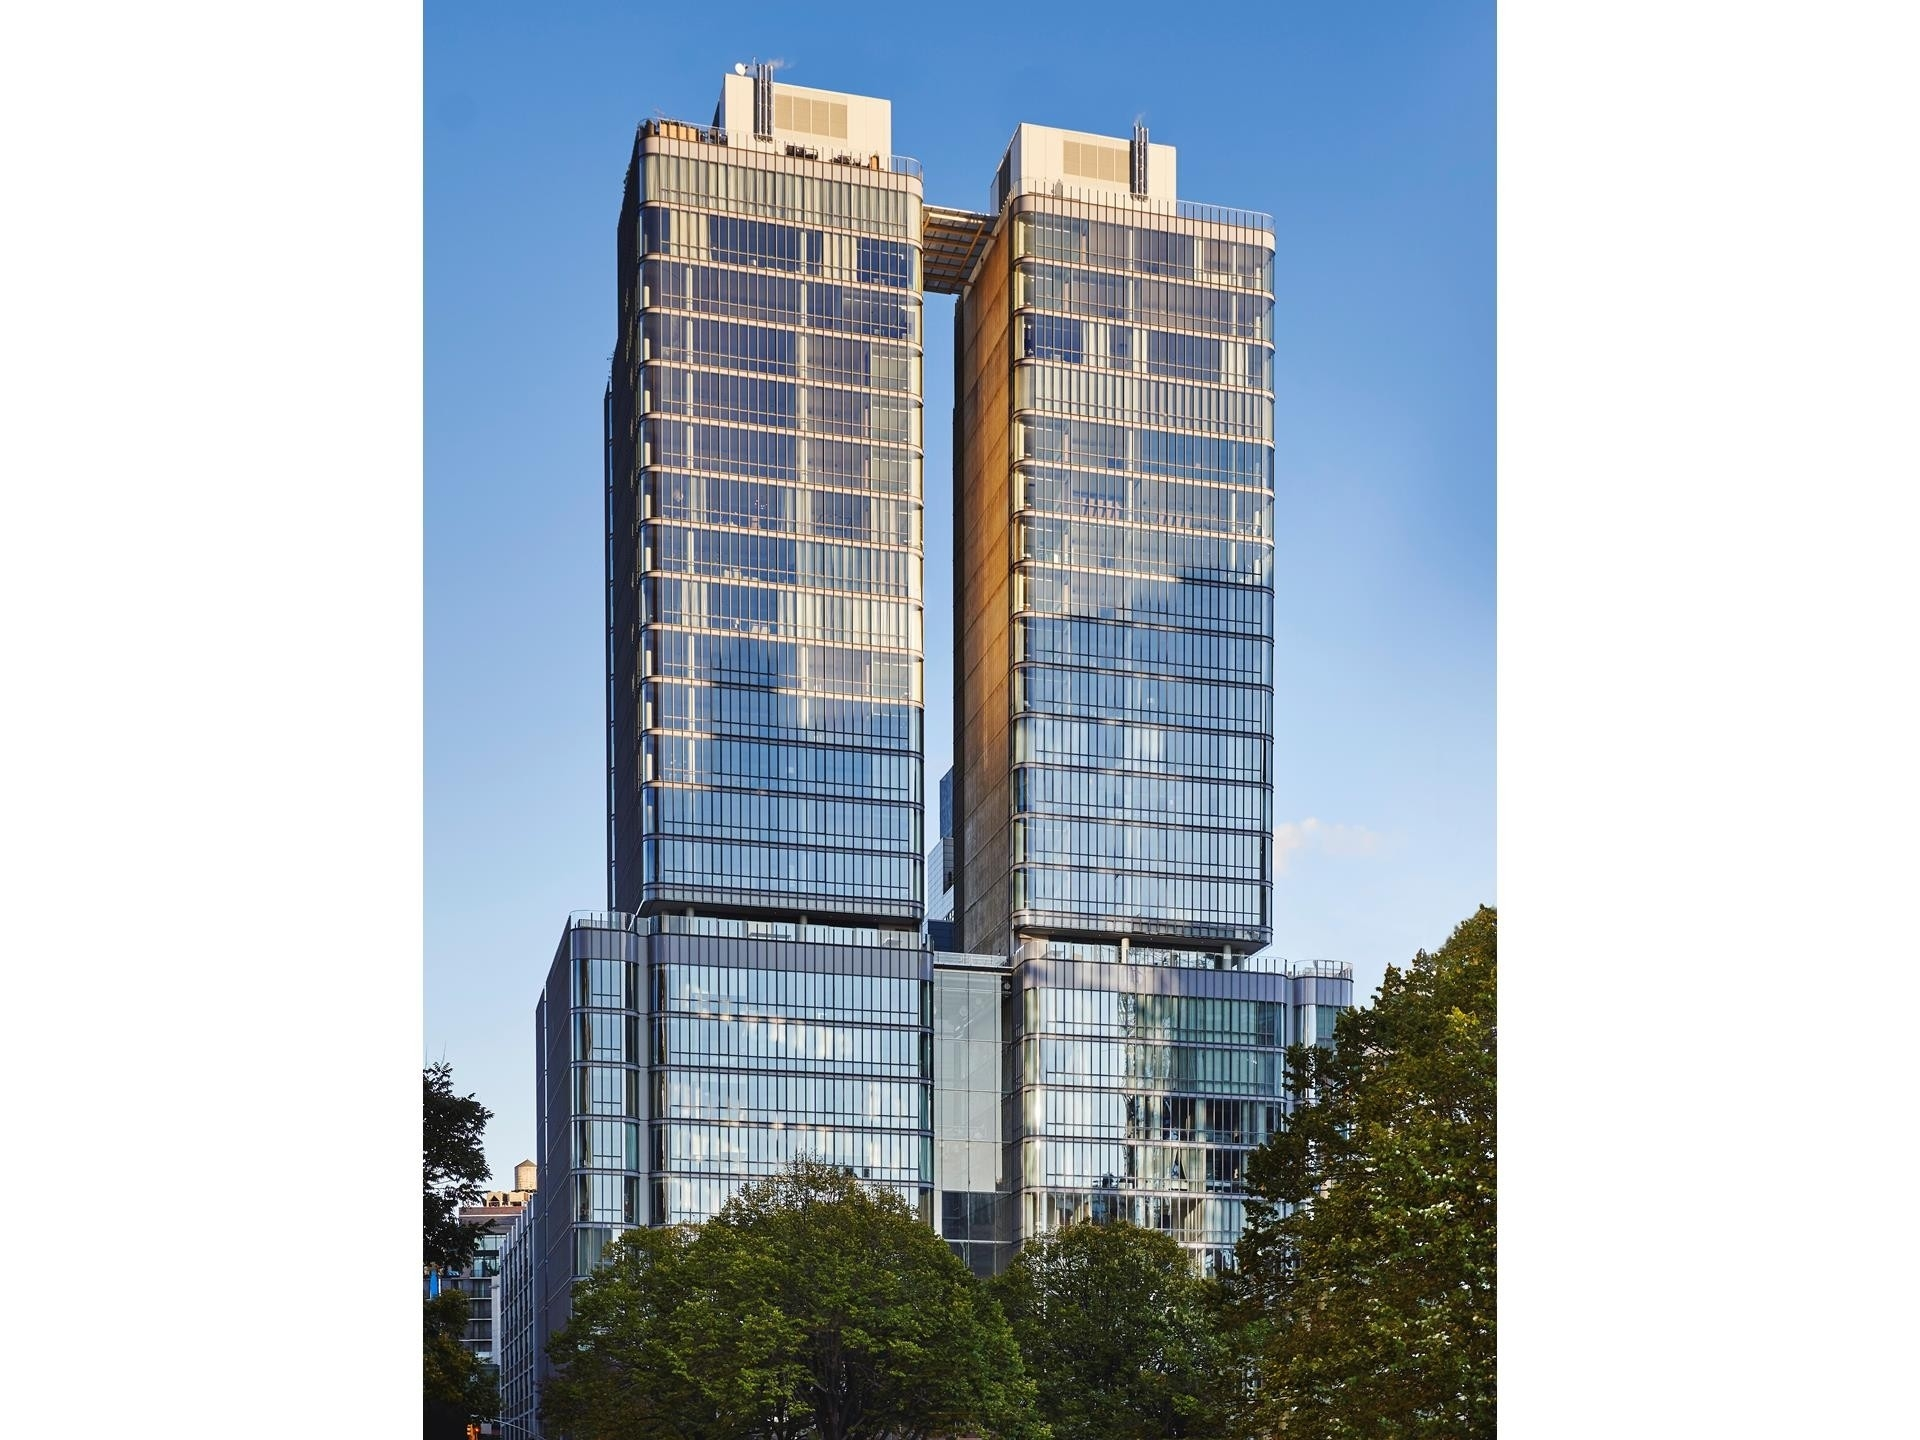 4. Condominiums for Sale at 565 Broome St, SOUTHPHB Hudson Square, New York, NY 10013